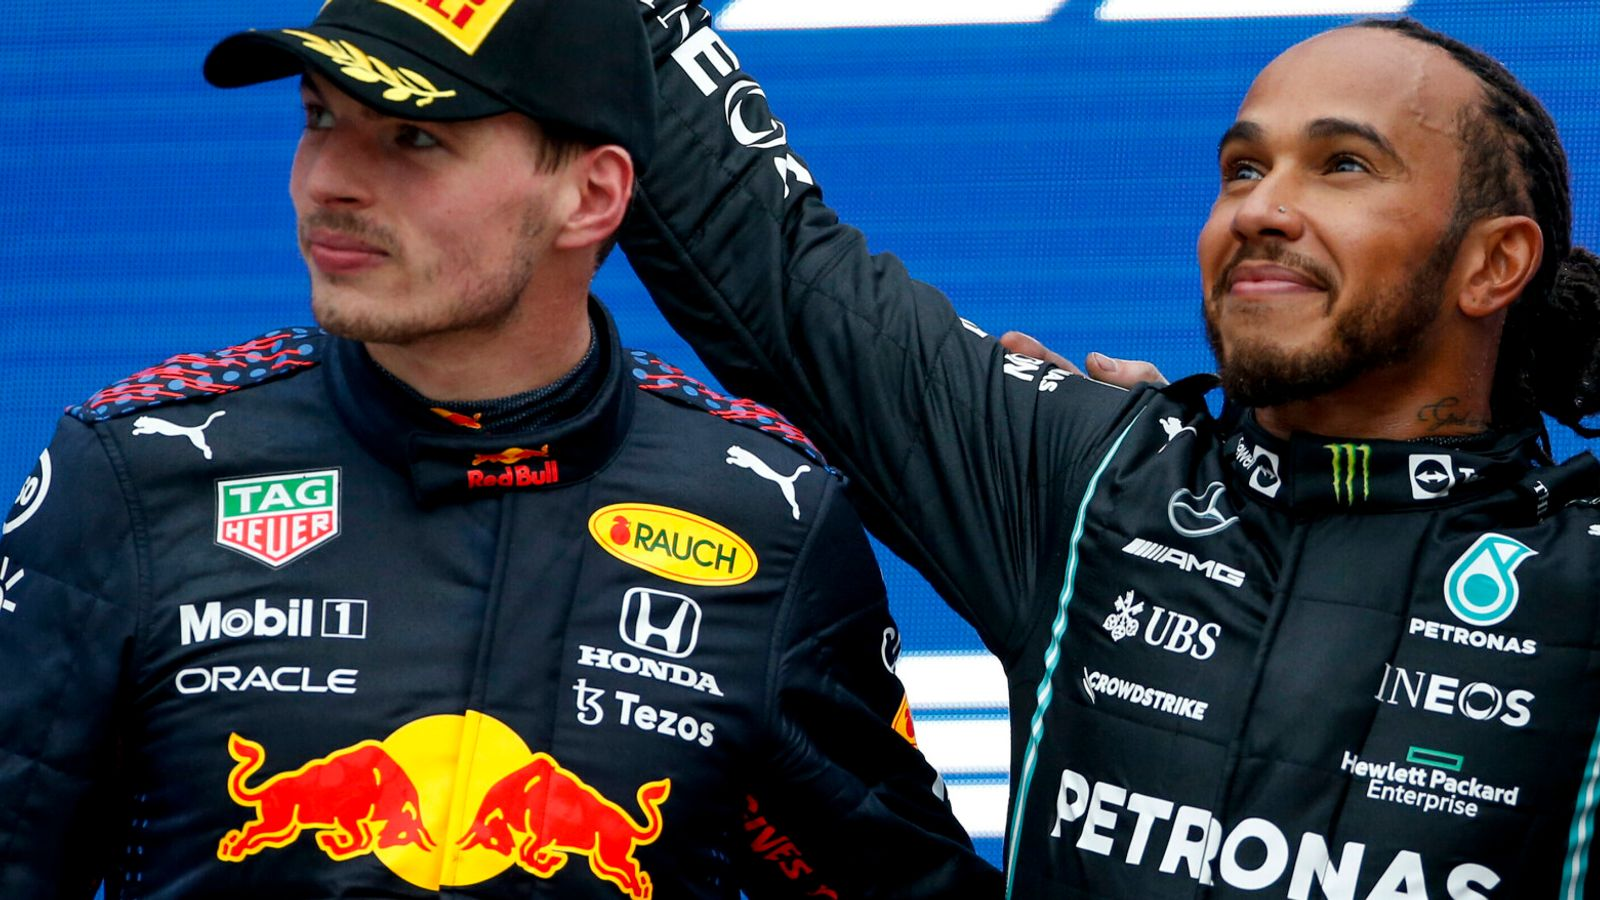 Russian GP: Max Verstappen's second place 'like a victory' to Red Bull, Lewis Hamilton calls it 'mega damage limitation'